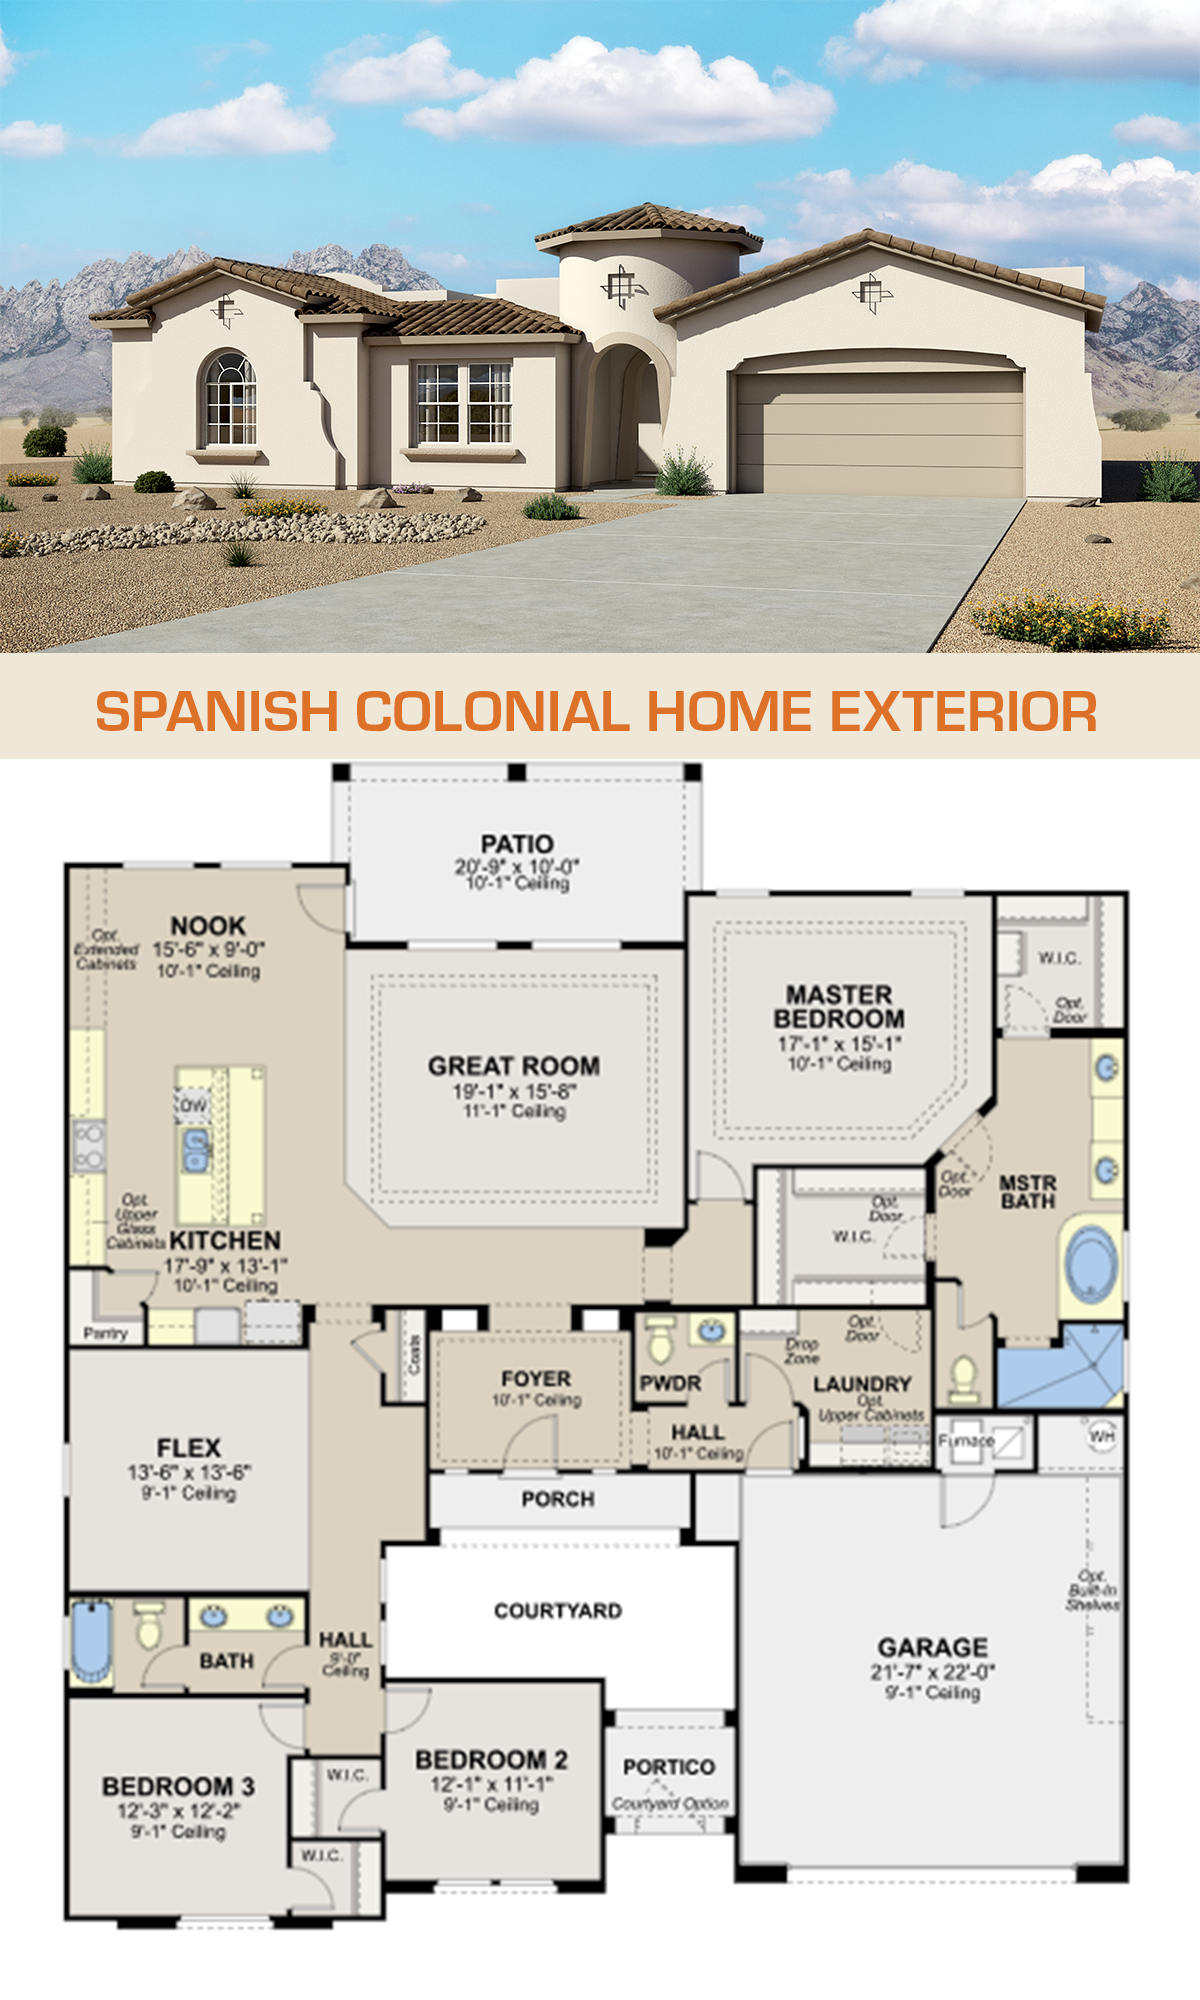 Spanish Colonial Home Exterior Spanish Colonial Homes Courtyard House Plans House Exterior